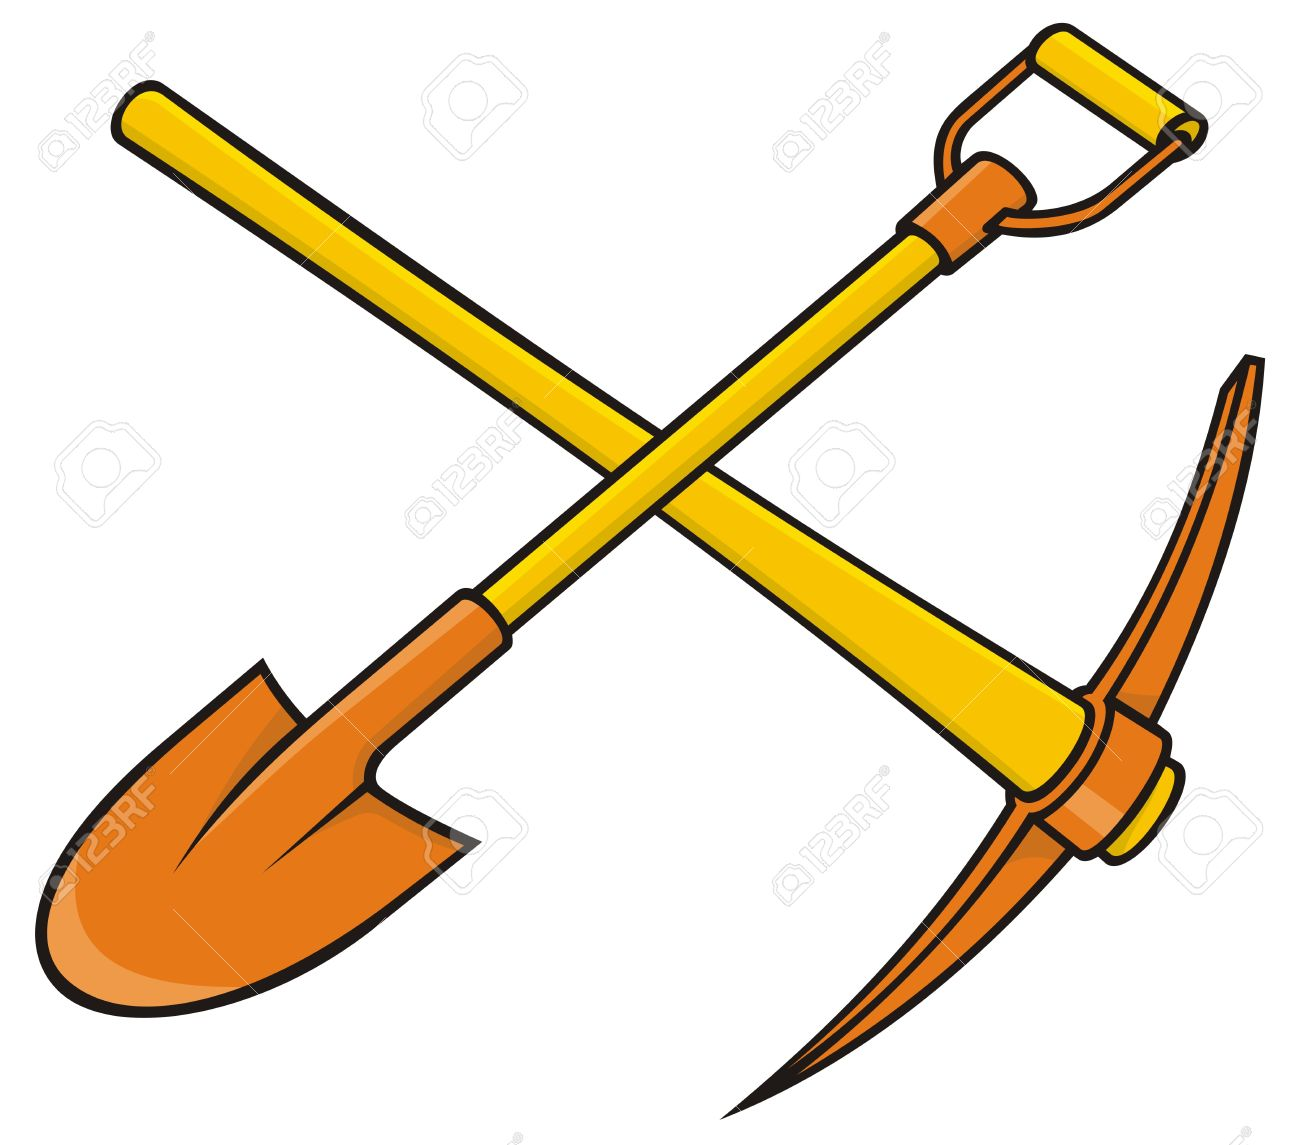 Crossed yellow and orange pickaxe and shovel icon on white background. - 9555517